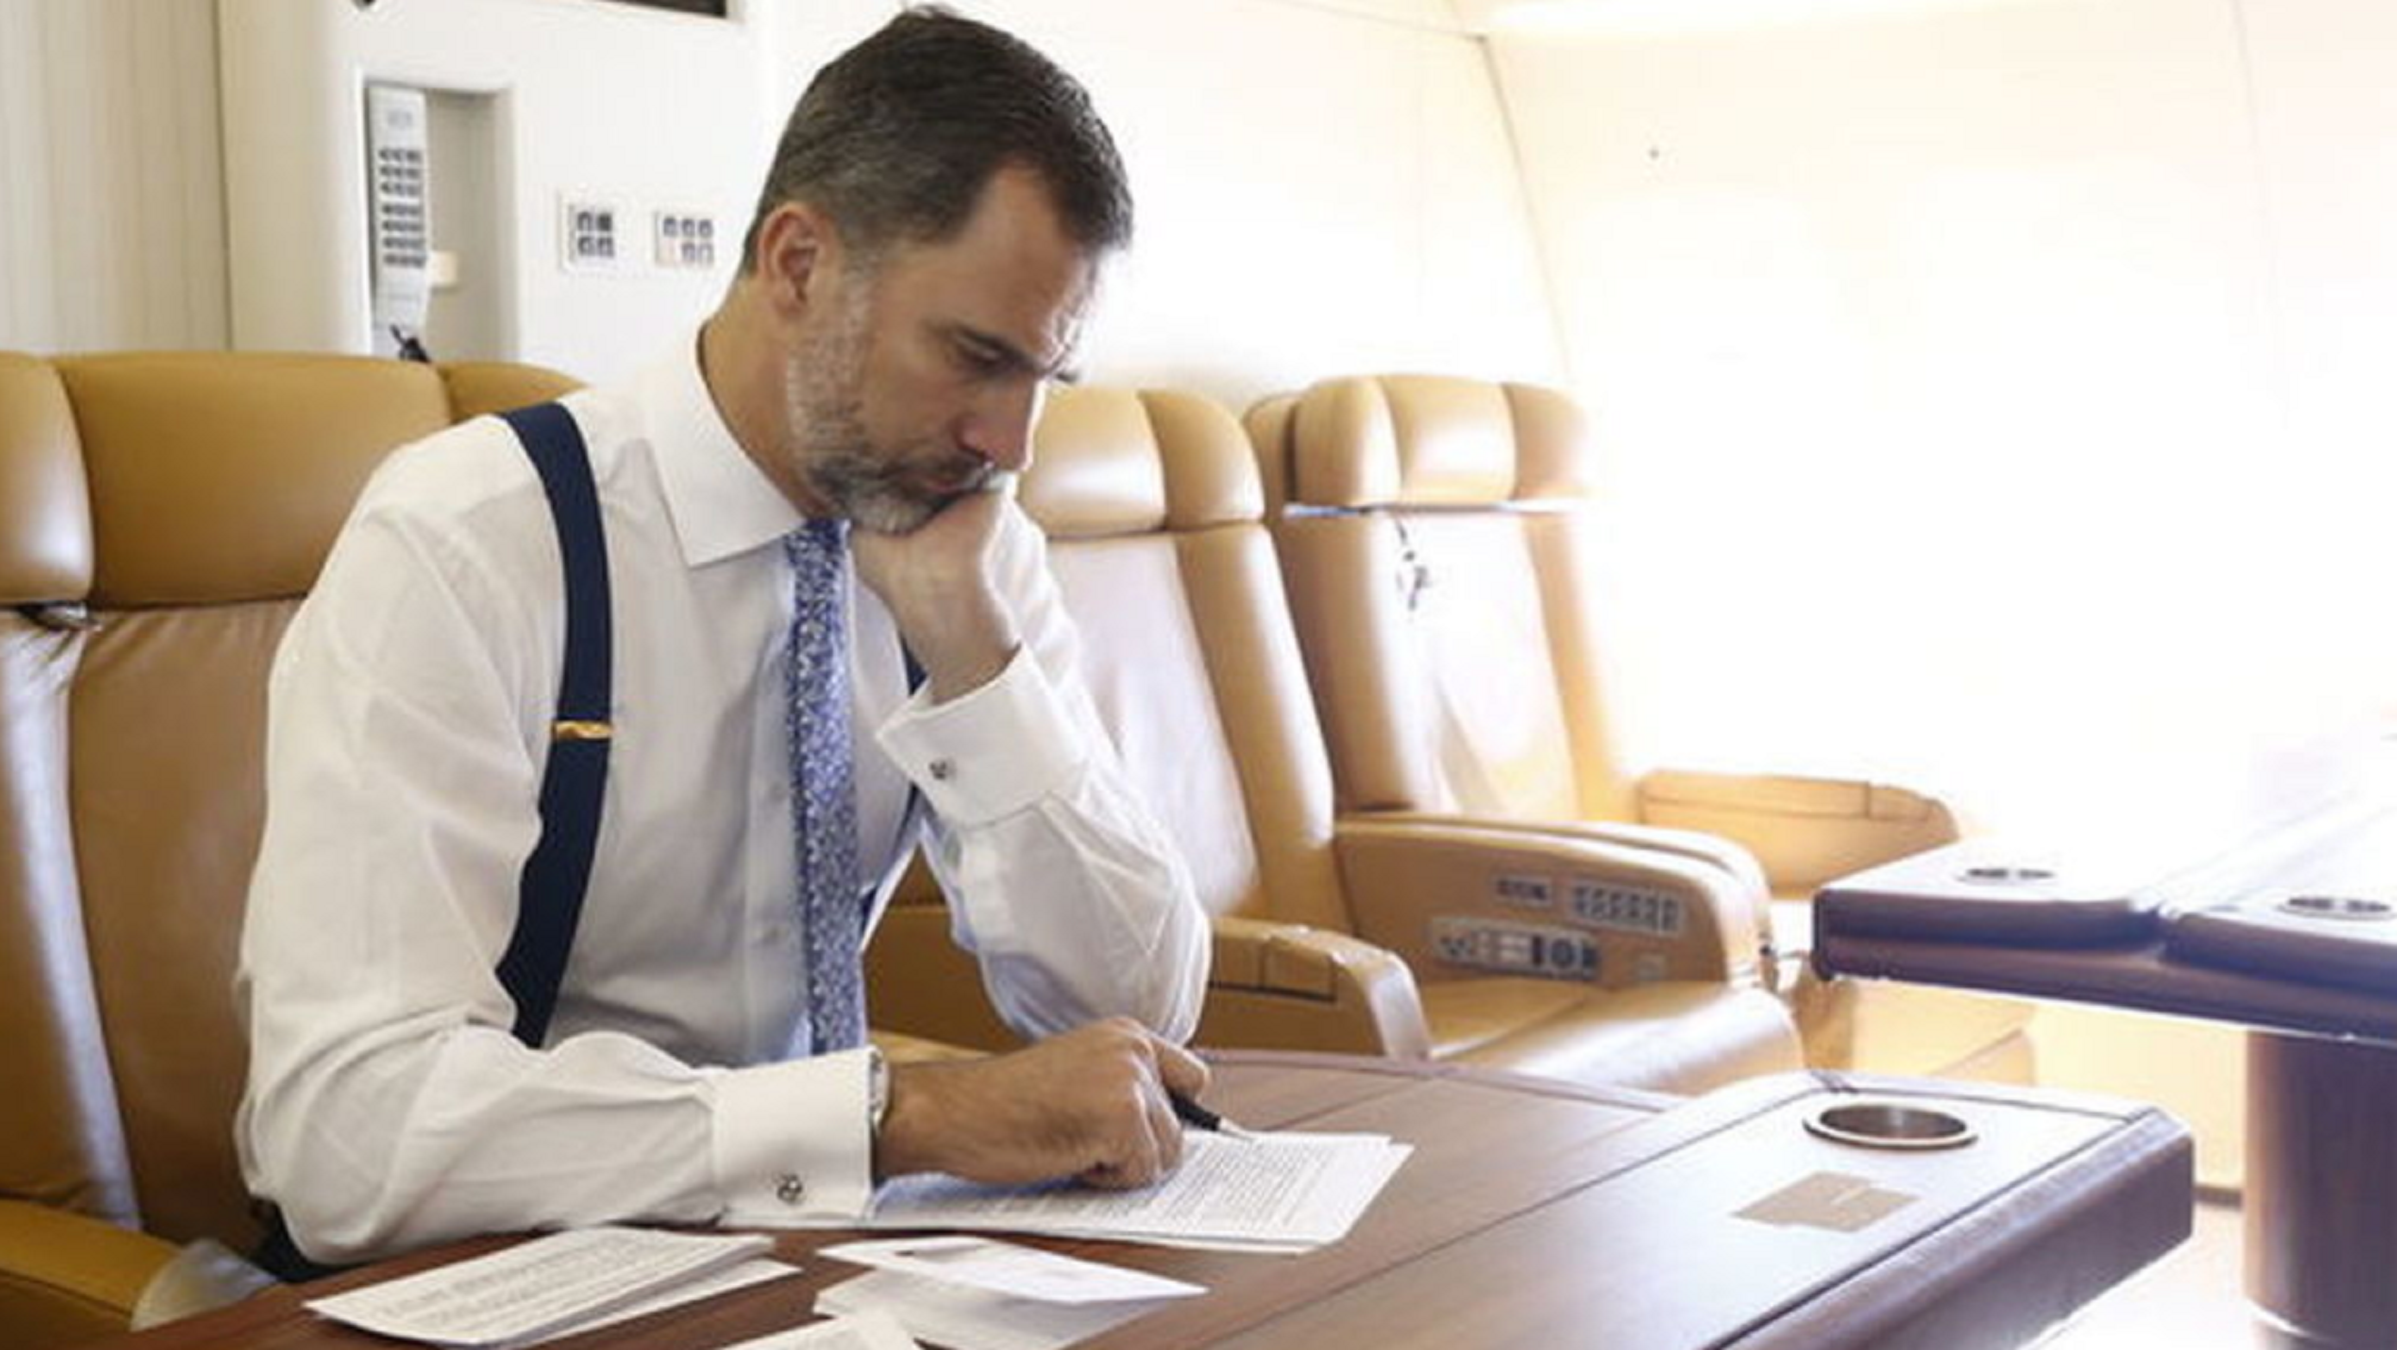 The Spanish royals' luxury holiday starts on their plane